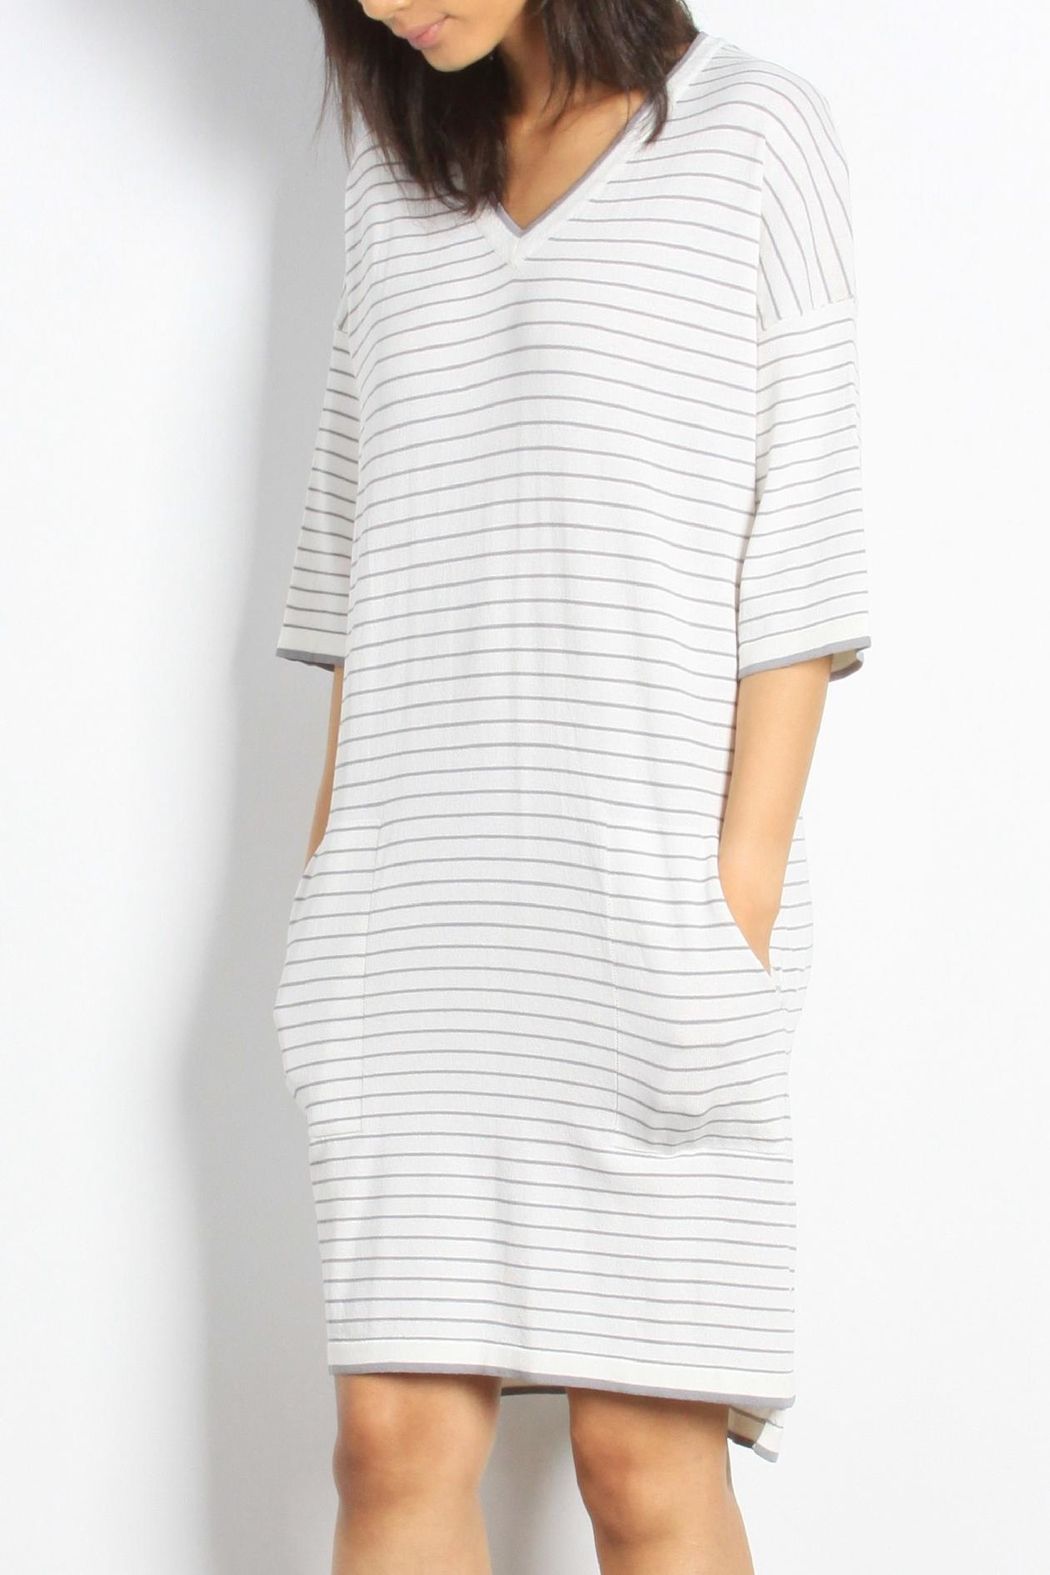 Mod Ref Channing Striped Dress - Back Cropped Image